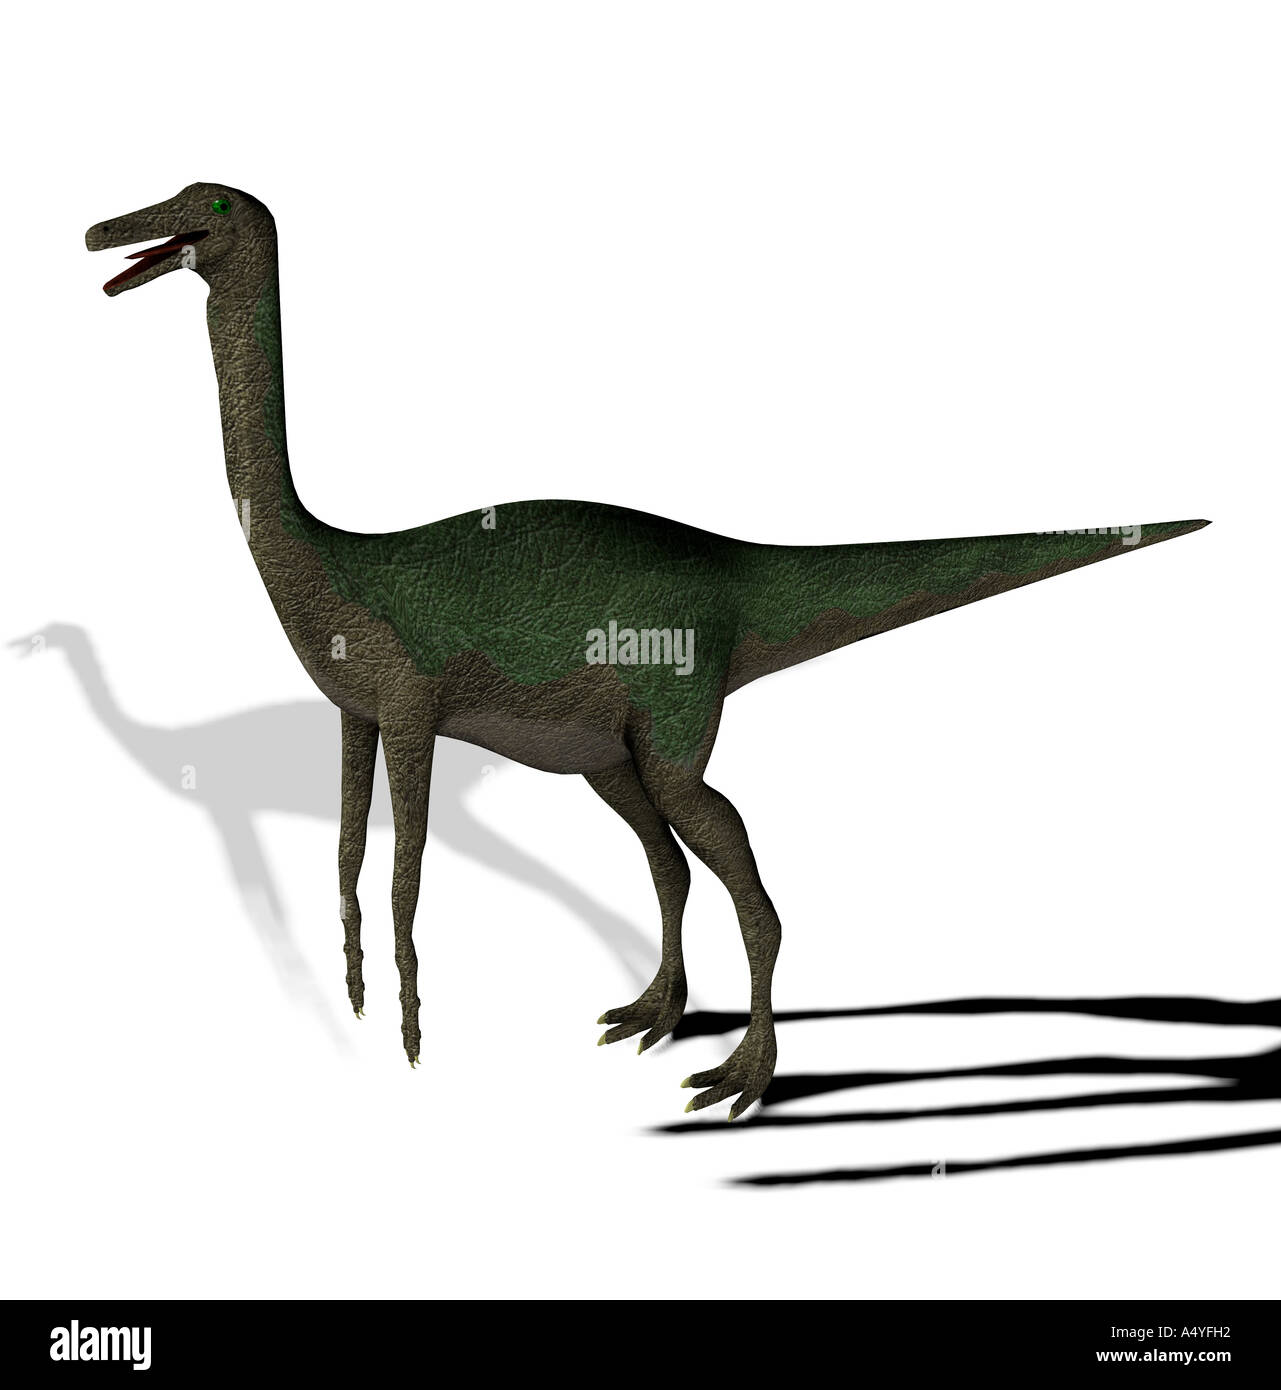 The Gallimimus seemed also chickens to imitators mentioned with a length from more than 6 meters it in the Cretaceous period - Stock Image